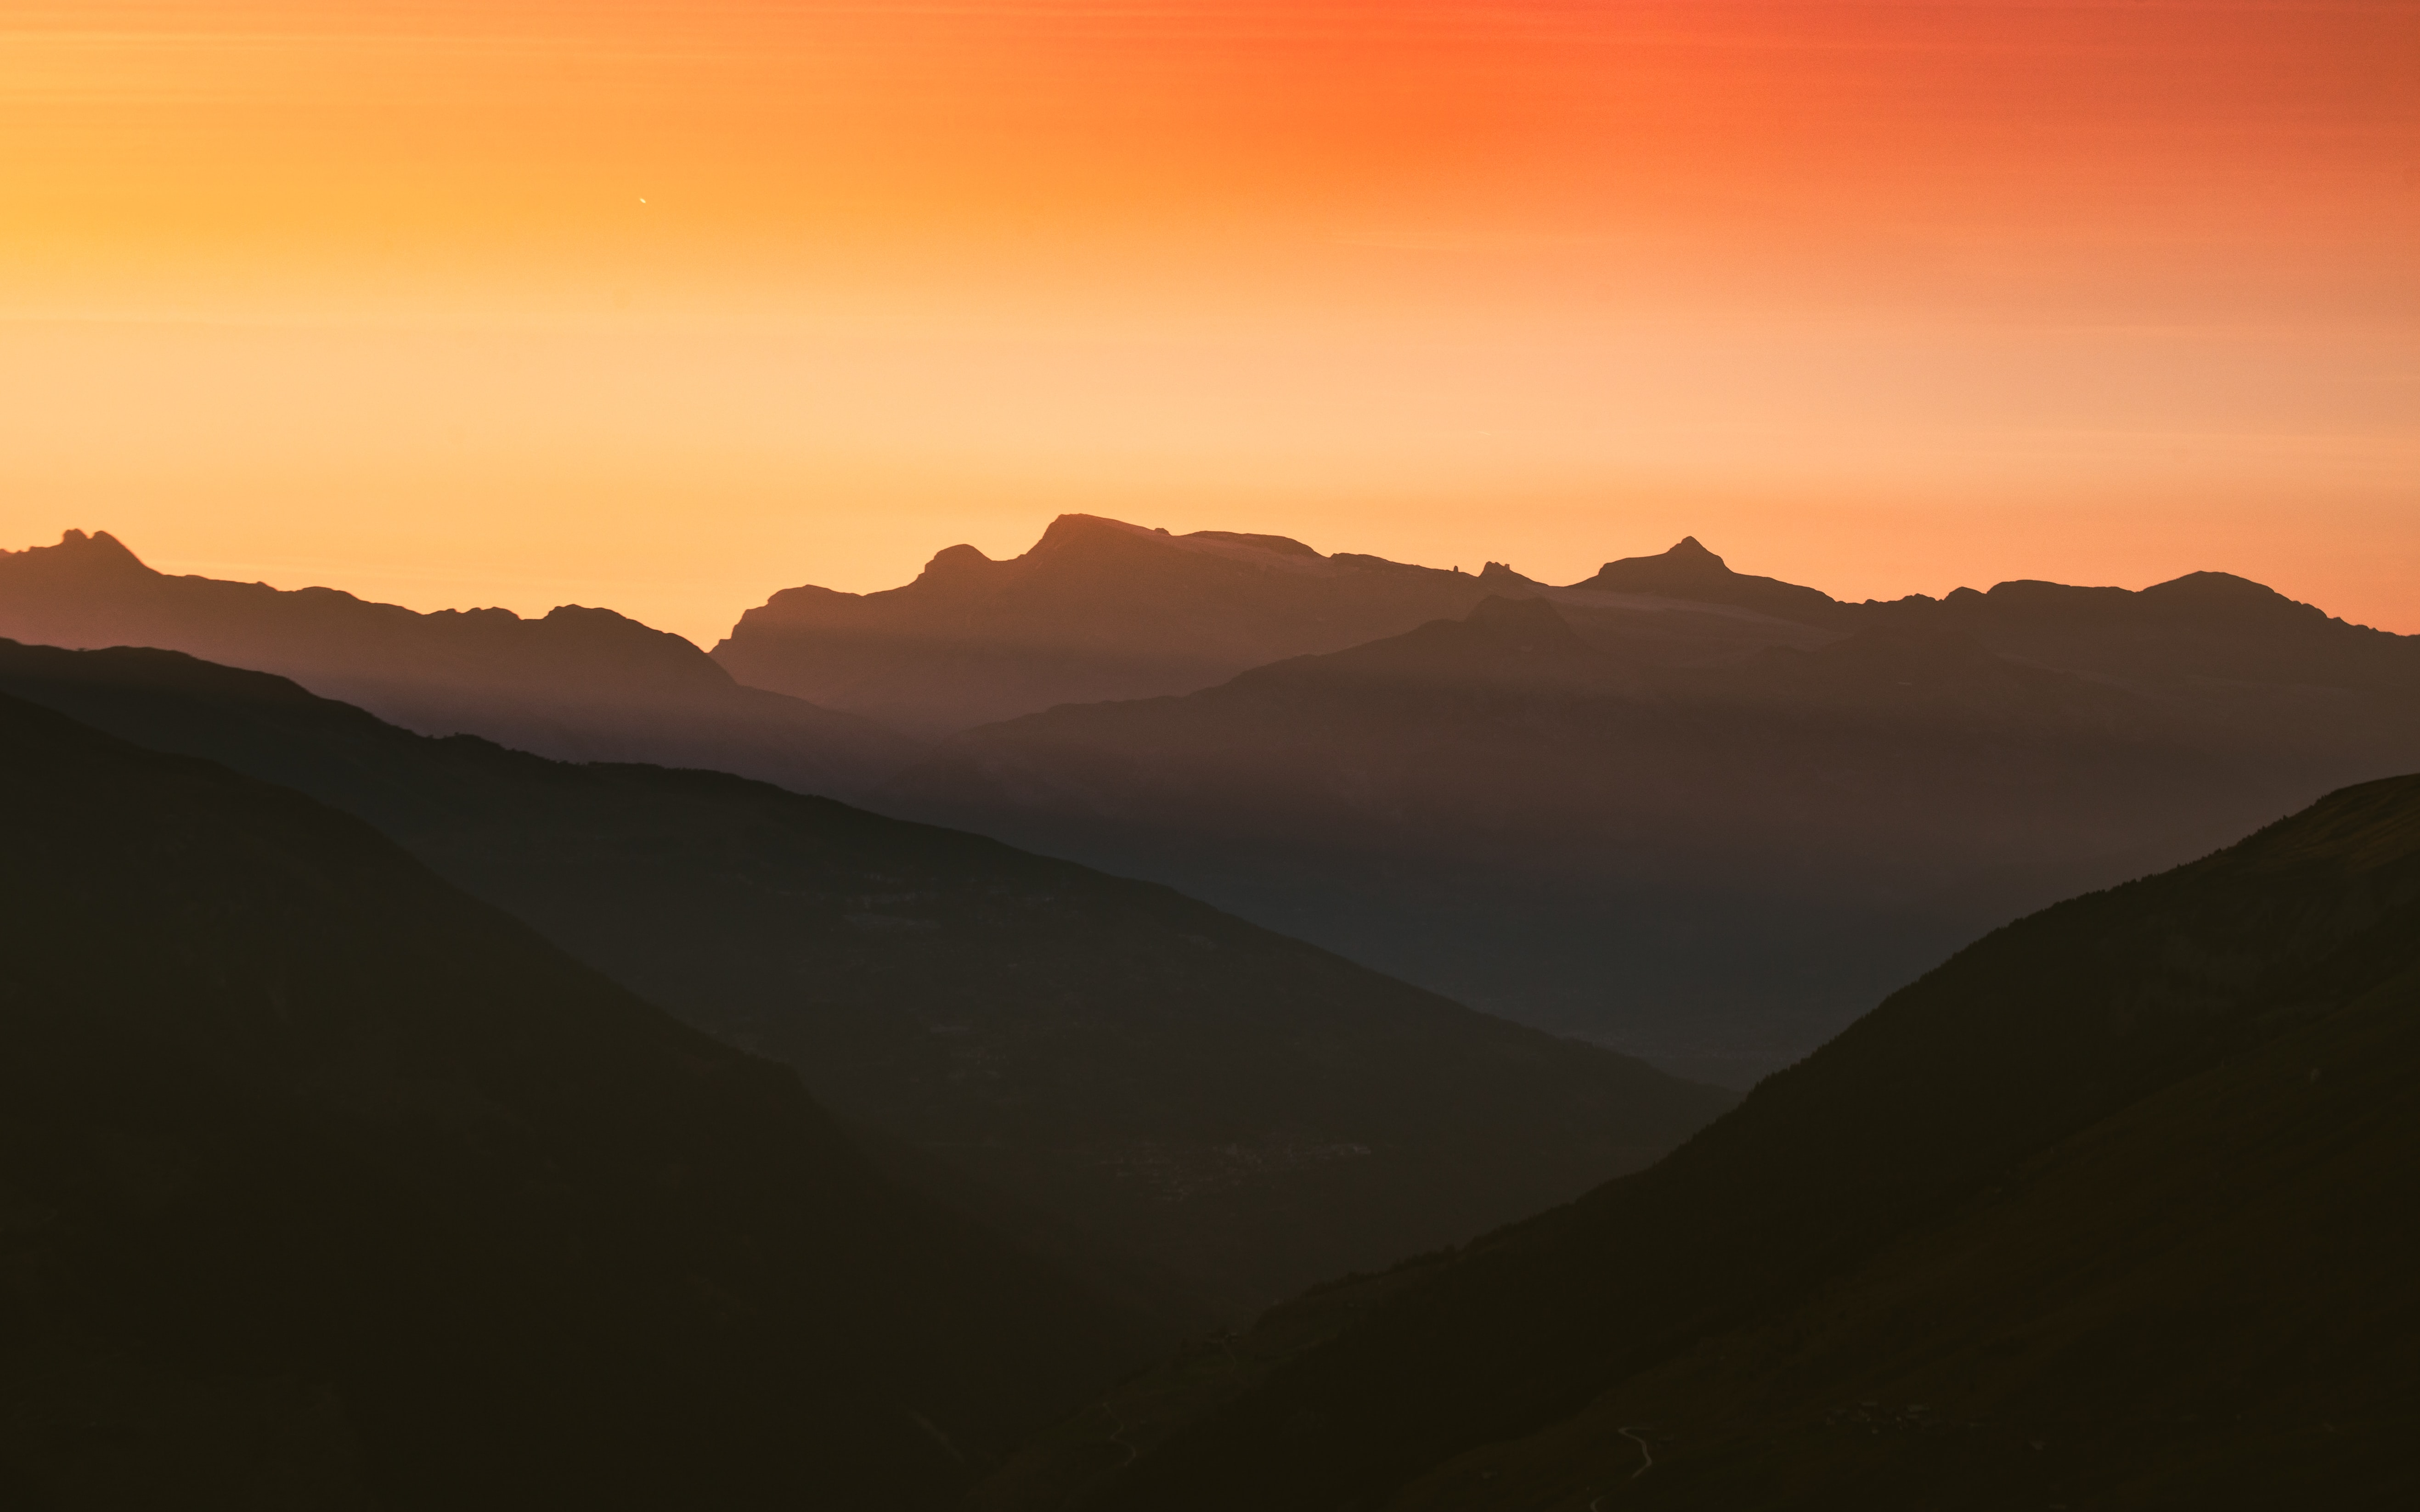 swiss alps cold mountains silhouette 4k 1615197629 - Swiss Alps Cold Mountains Silhouette 4k - Swiss Alps Cold Mountains Silhouette 4k wallpapers